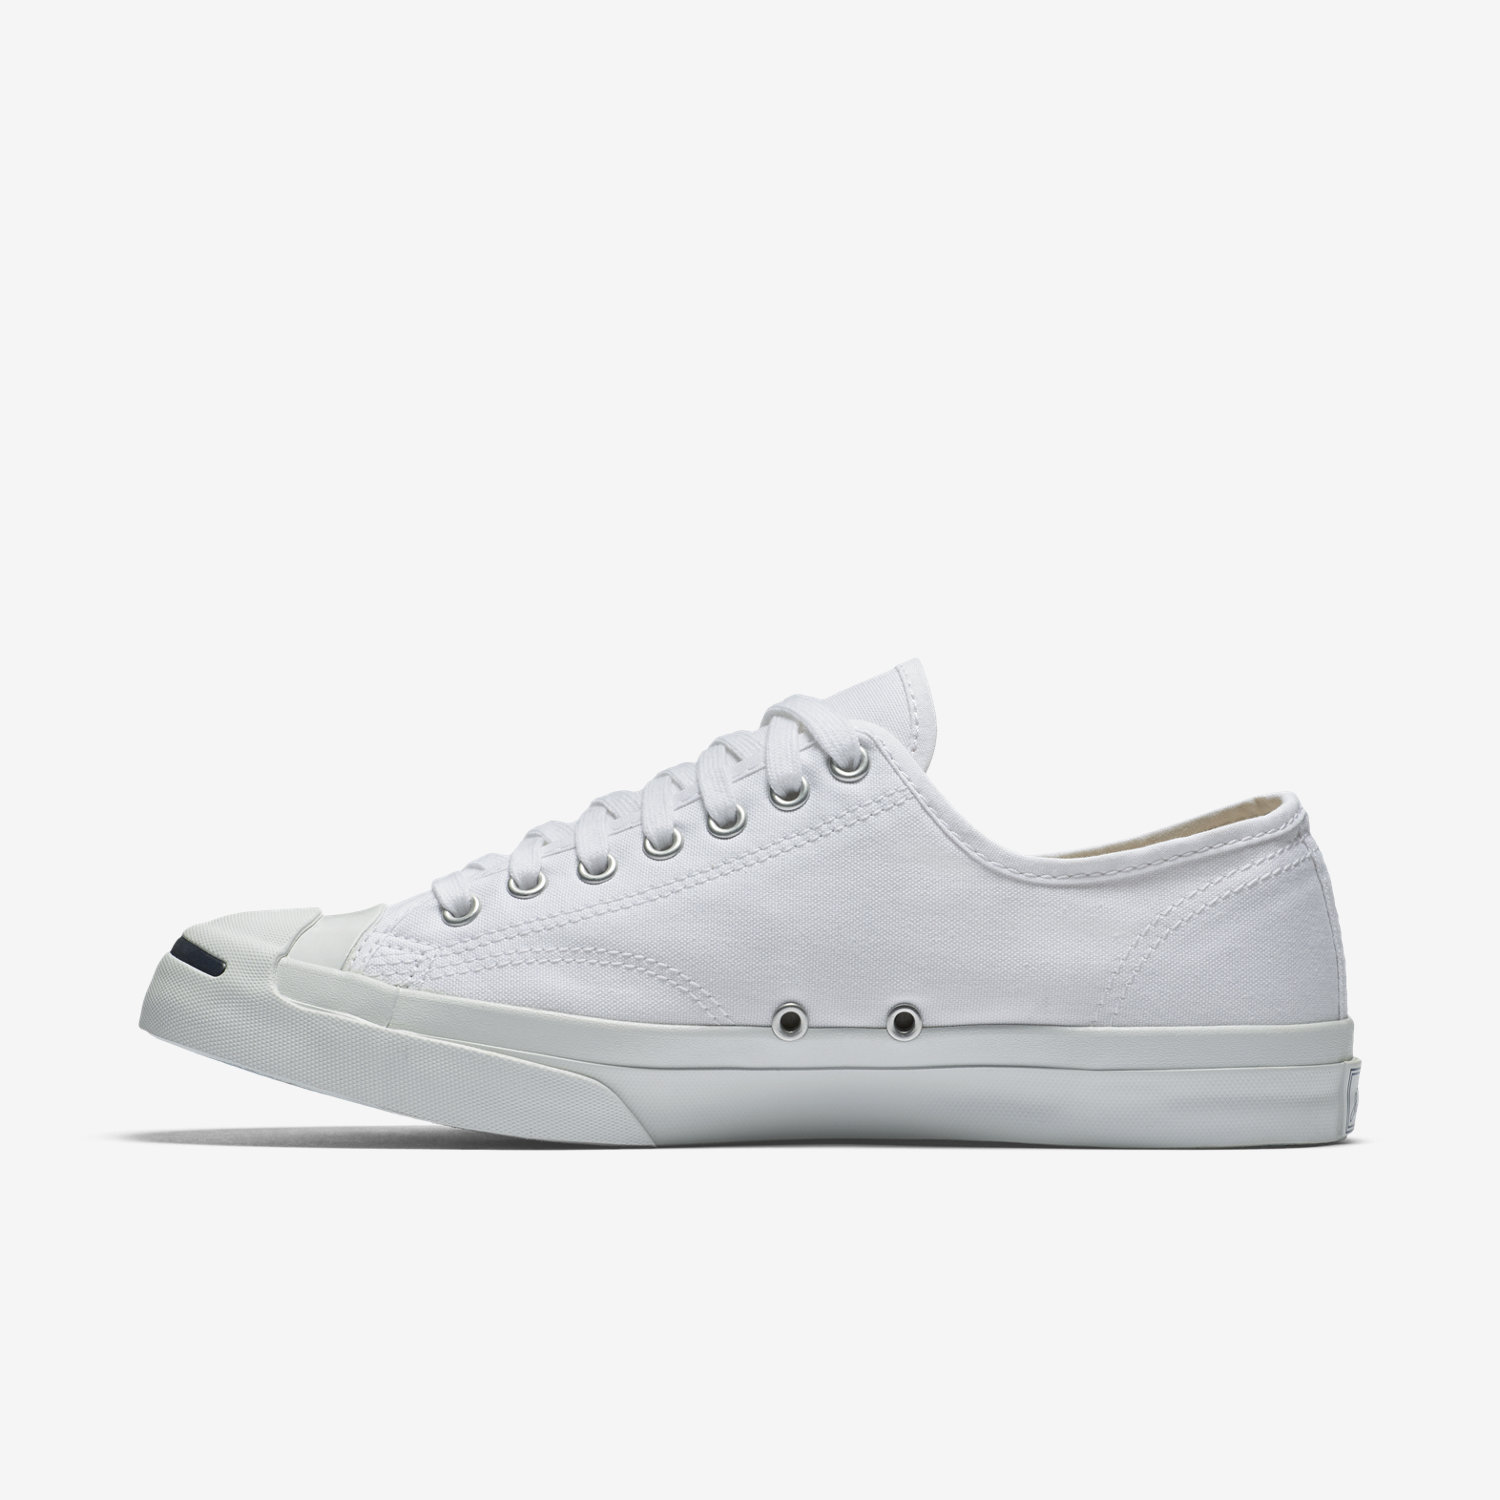 a36545c99a42d0 ... promo code for converse jack purcell classic low top unisex shoe. nike  fb1c1 e9d85